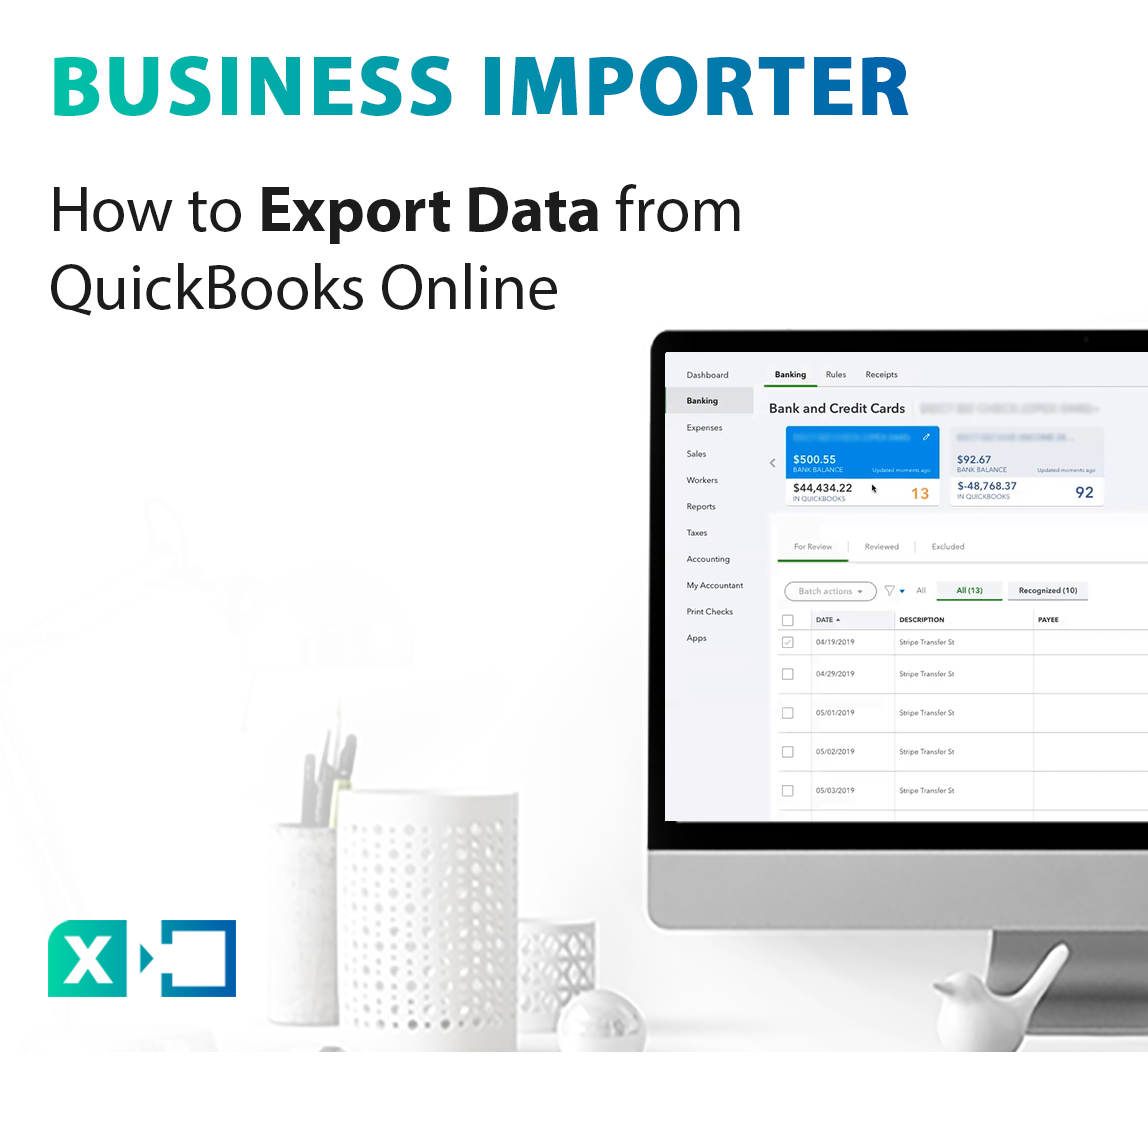 export data from QuickBooks